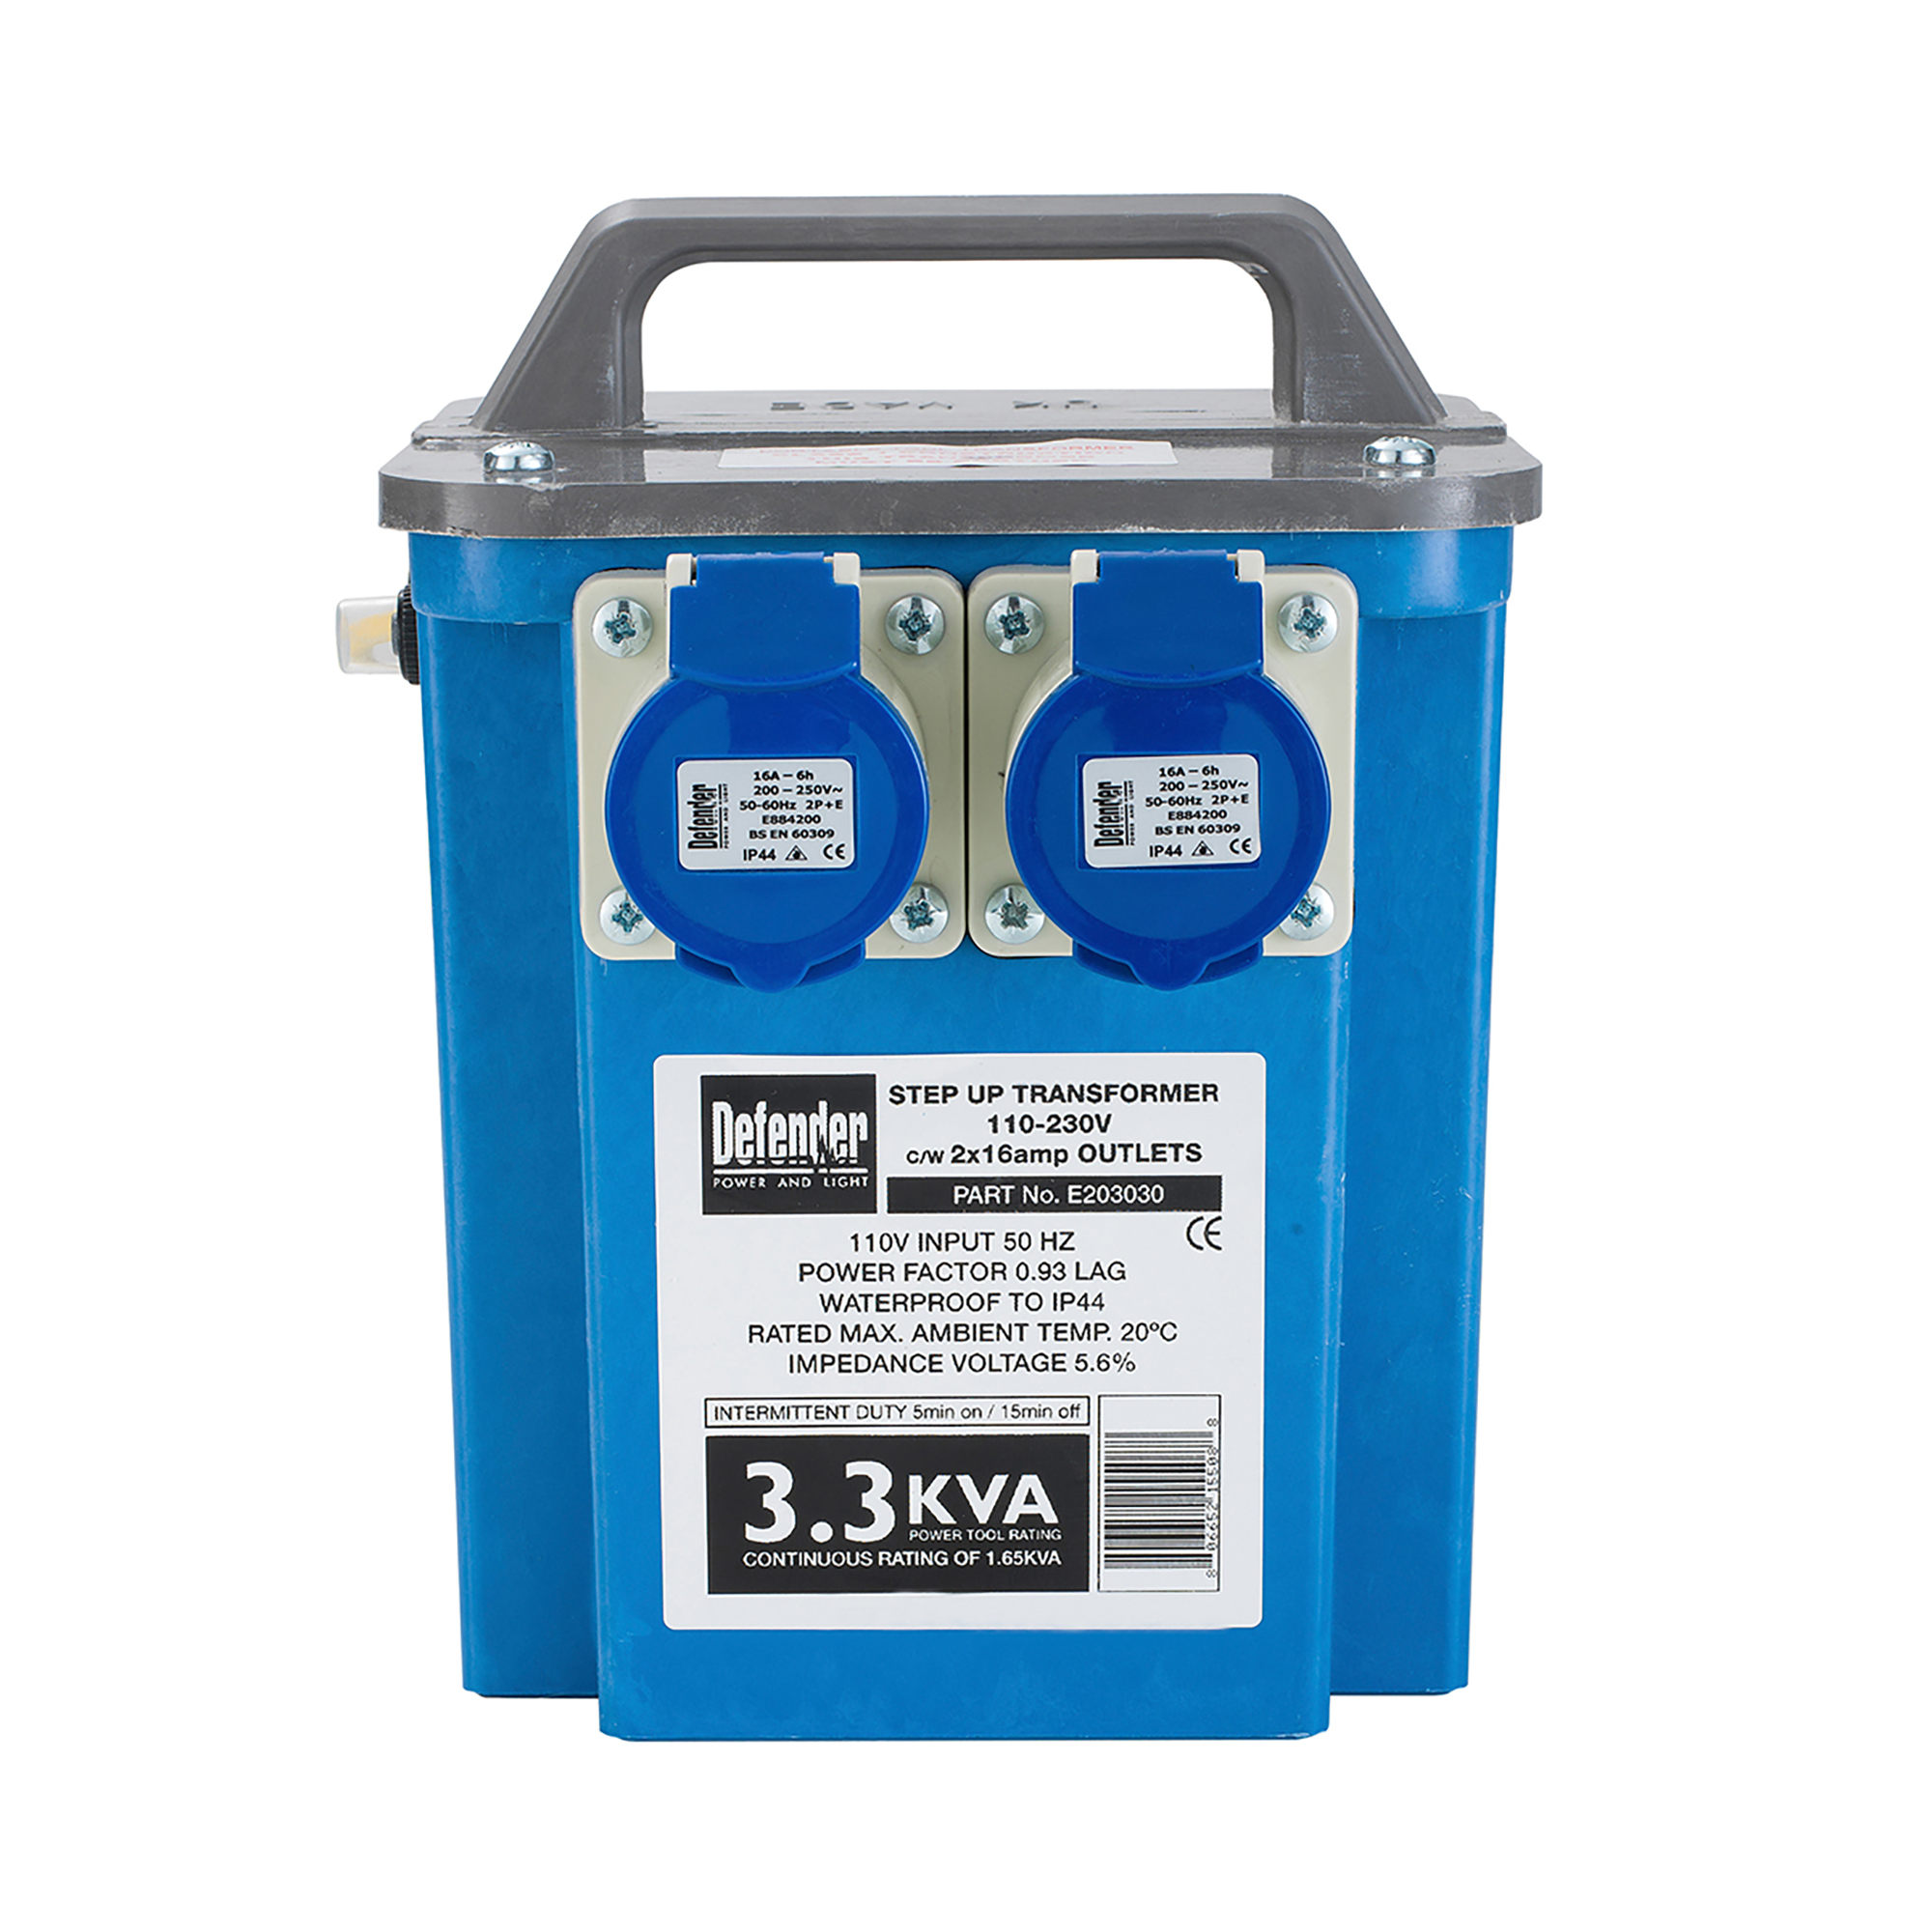 Blue cube Defender step-up transformer with handle on top, 2 power outlets and information stickers on the front